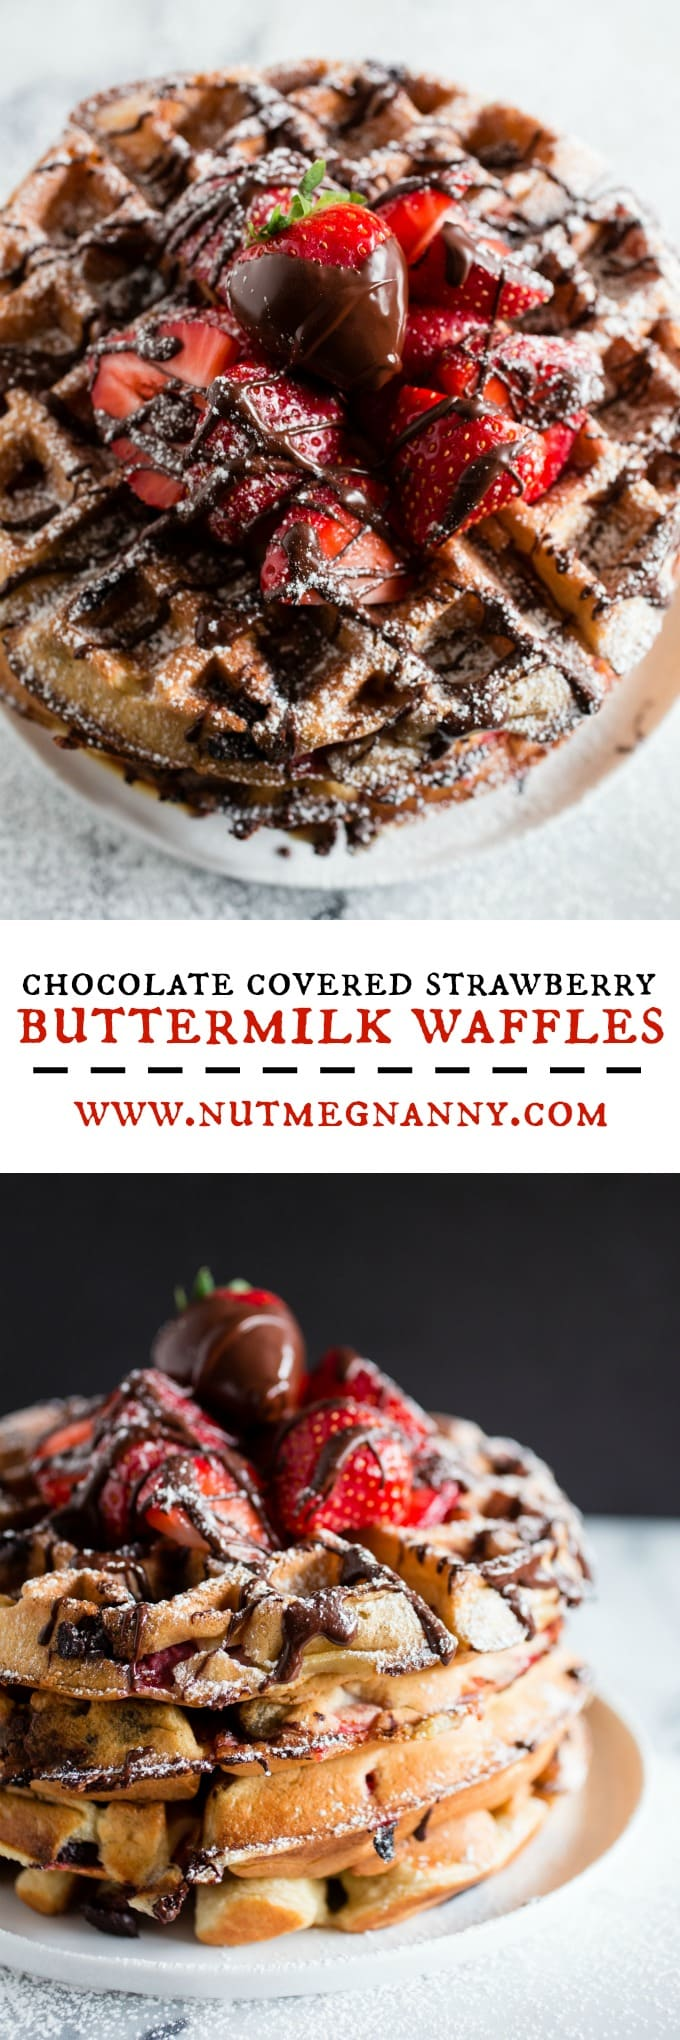 These chocolate covered strawberry buttermilk waffles are the best breakfast you will ever have! Fresh berries tucked inside a fluffy buttermilk waffle and then drizzled with melted chocolate. How can you not love that?